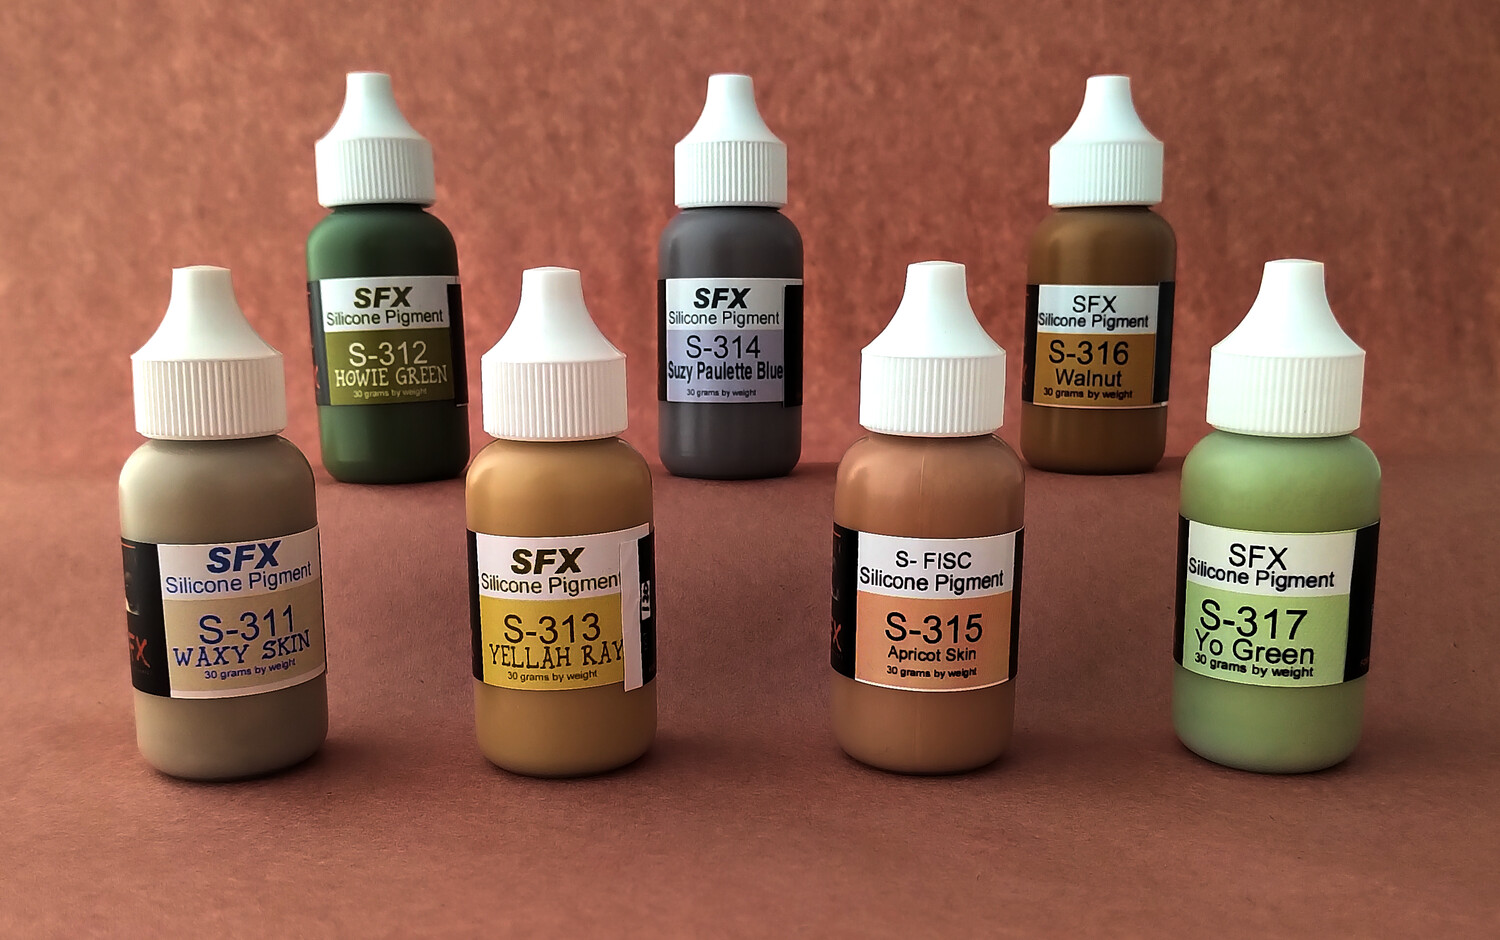 FuseFX SFX-Series Silicone Pigments (250g)